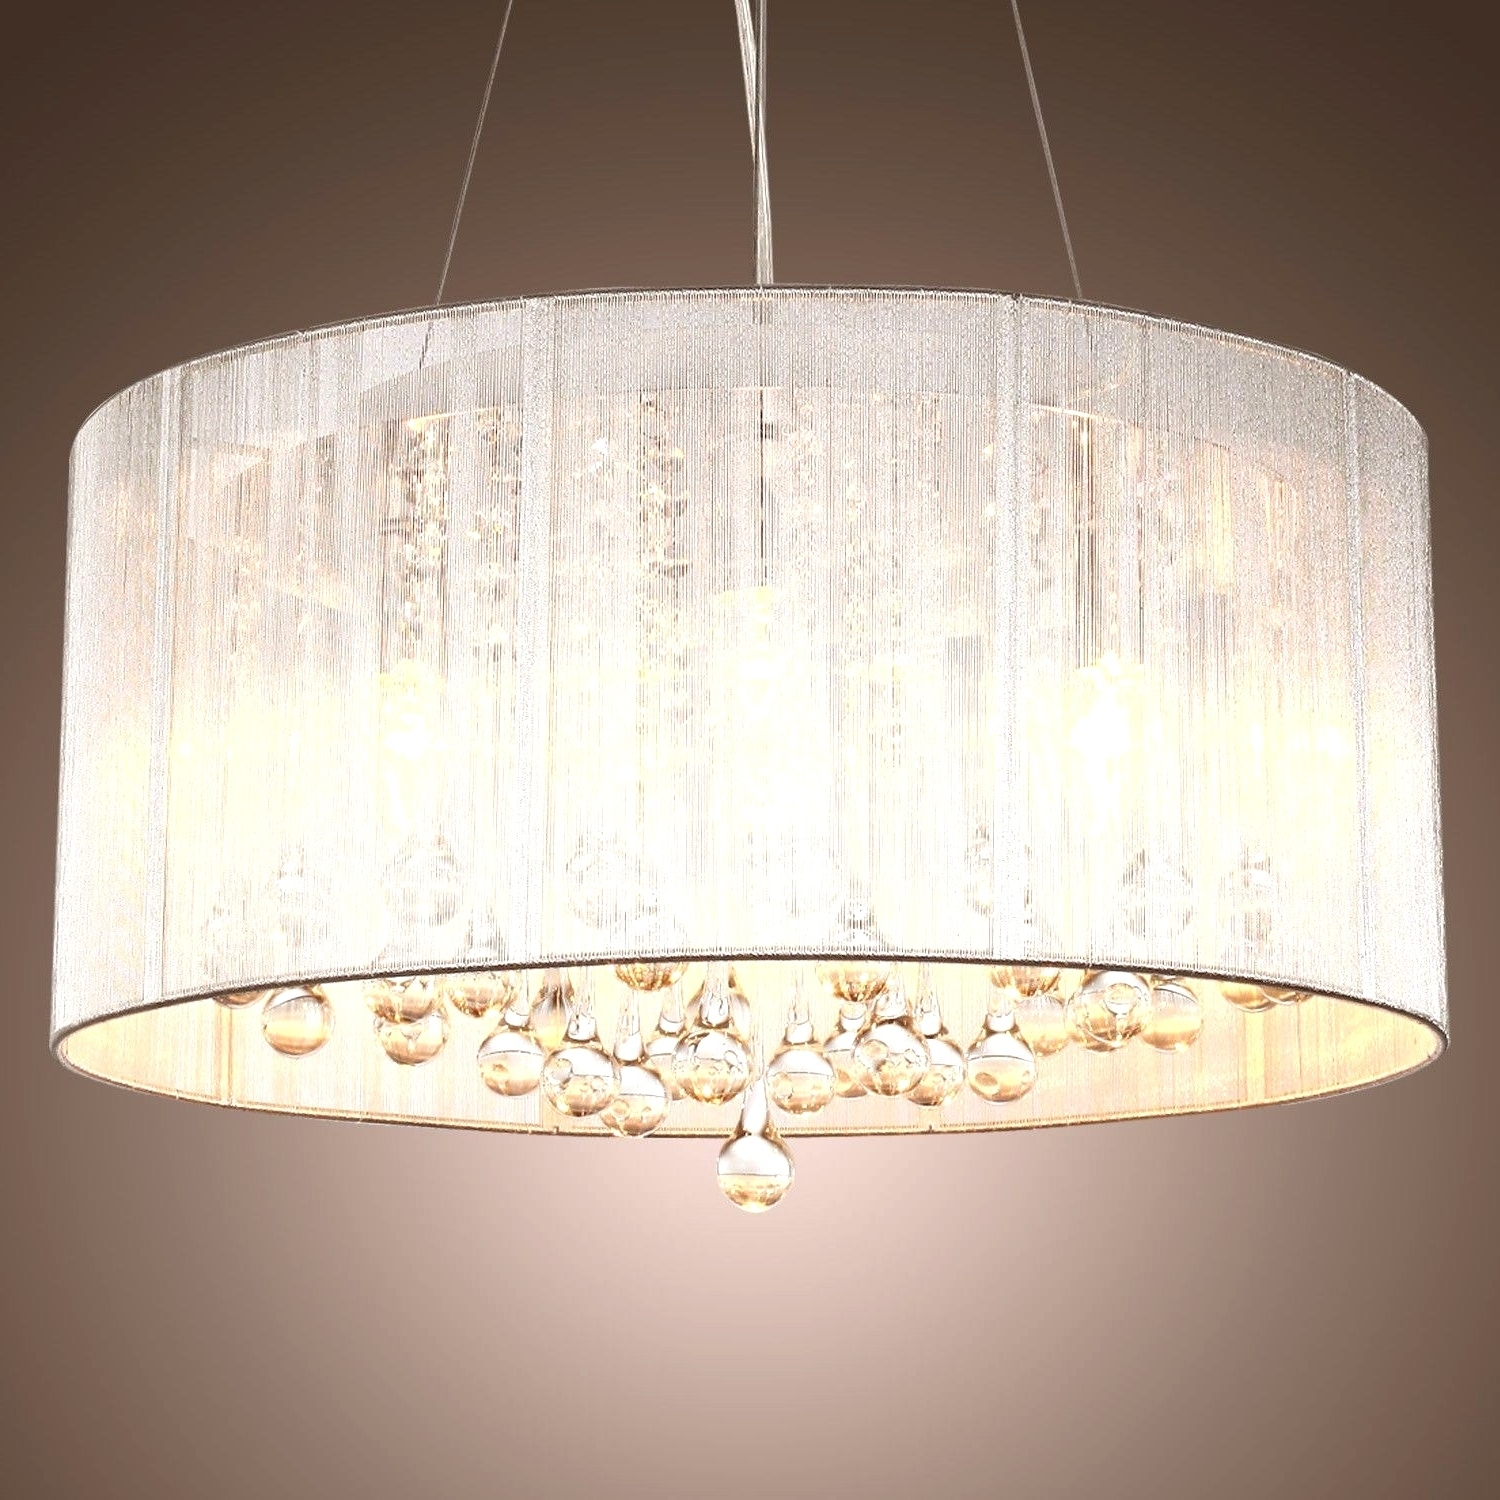 Clip On Drum Chandelier Shades Intended For Trendy Chandeliers Design : Magnificent Best Clip On Drum Chandelier Shades (View 2 of 20)